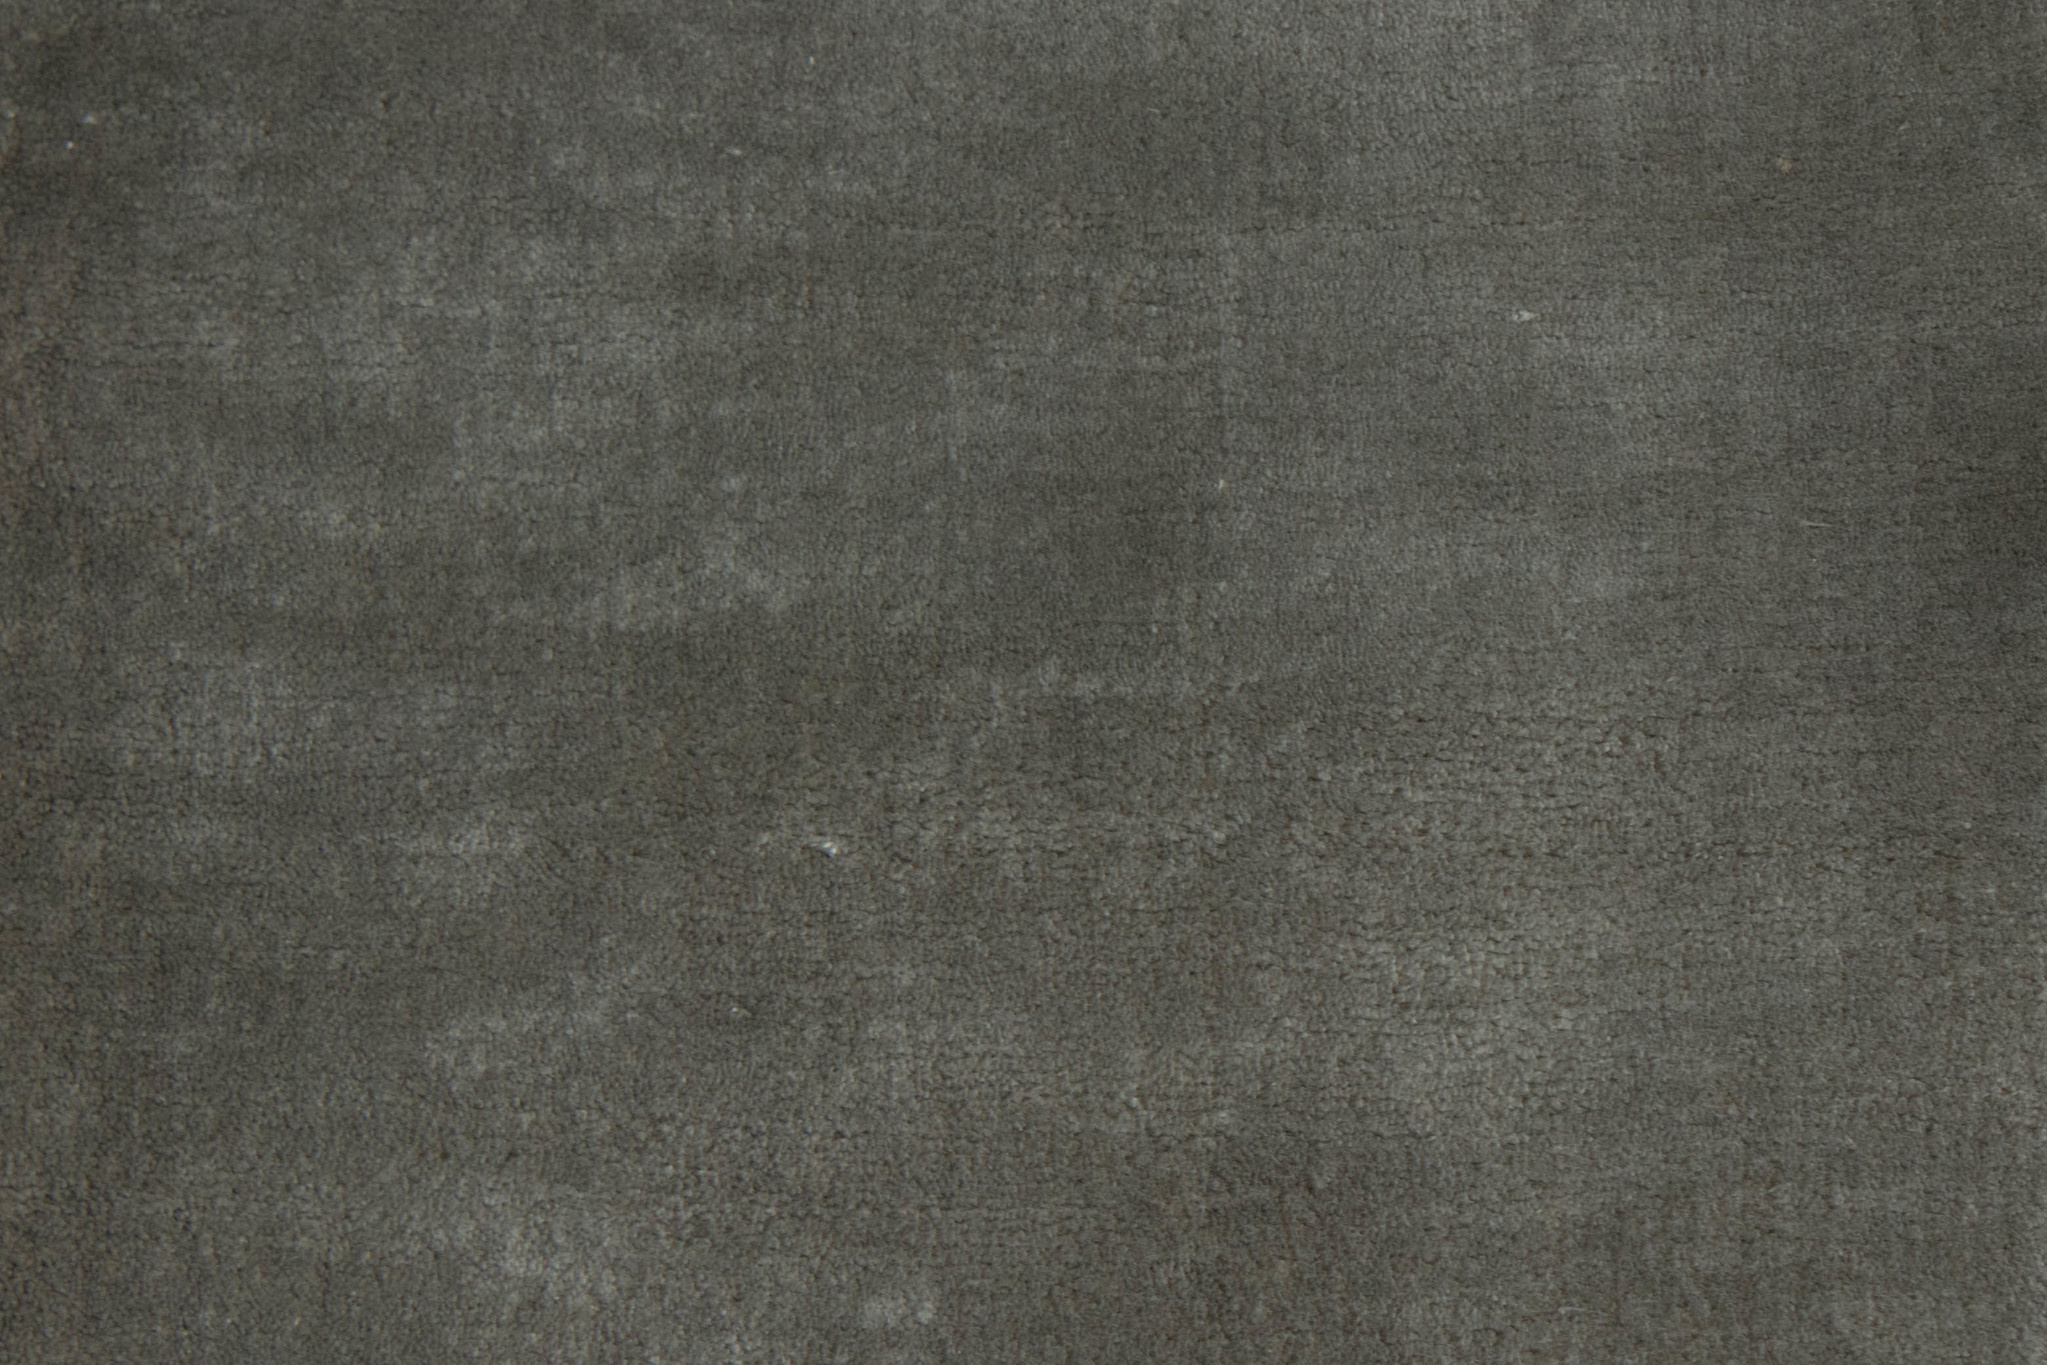 PARMA Carpet Deep Taupe 200x300-1